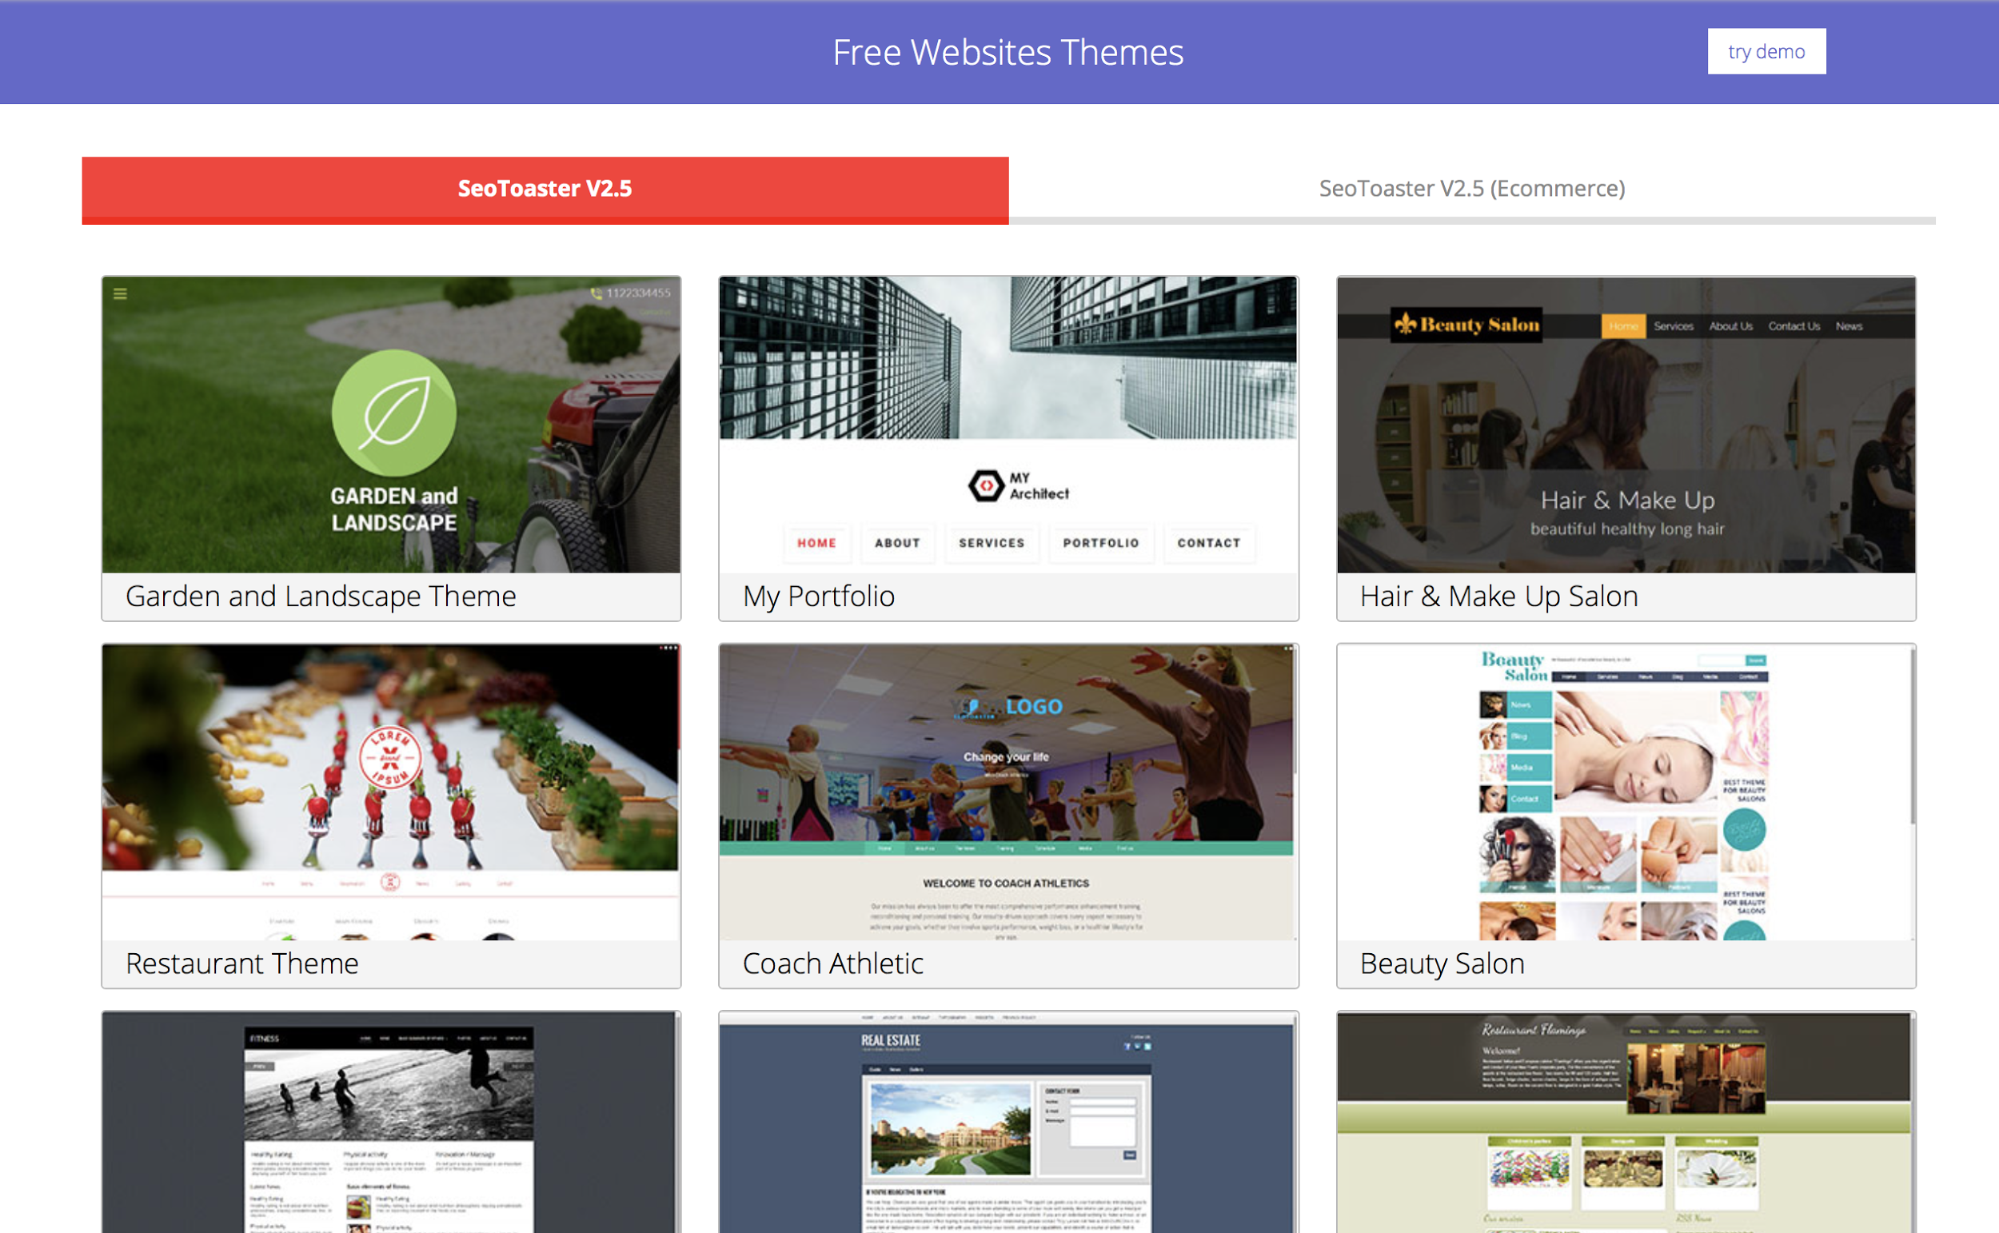 free websites themes